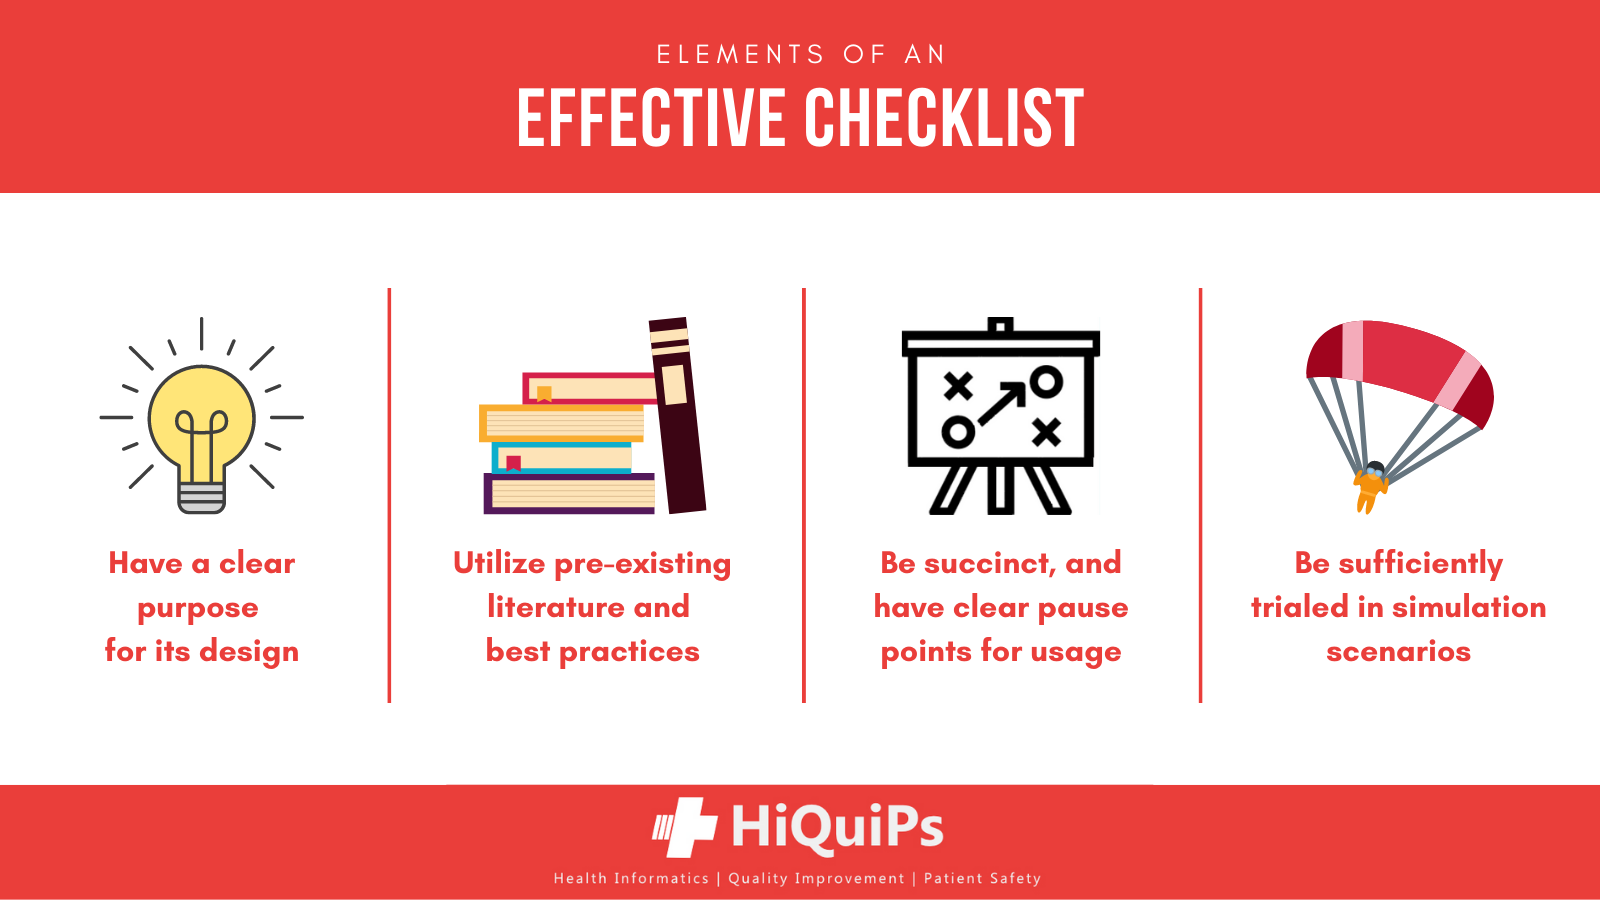 Elements of an Effective Checklist Infographic: Clear Purpose, Evidence Based, Succinct, Trialed.